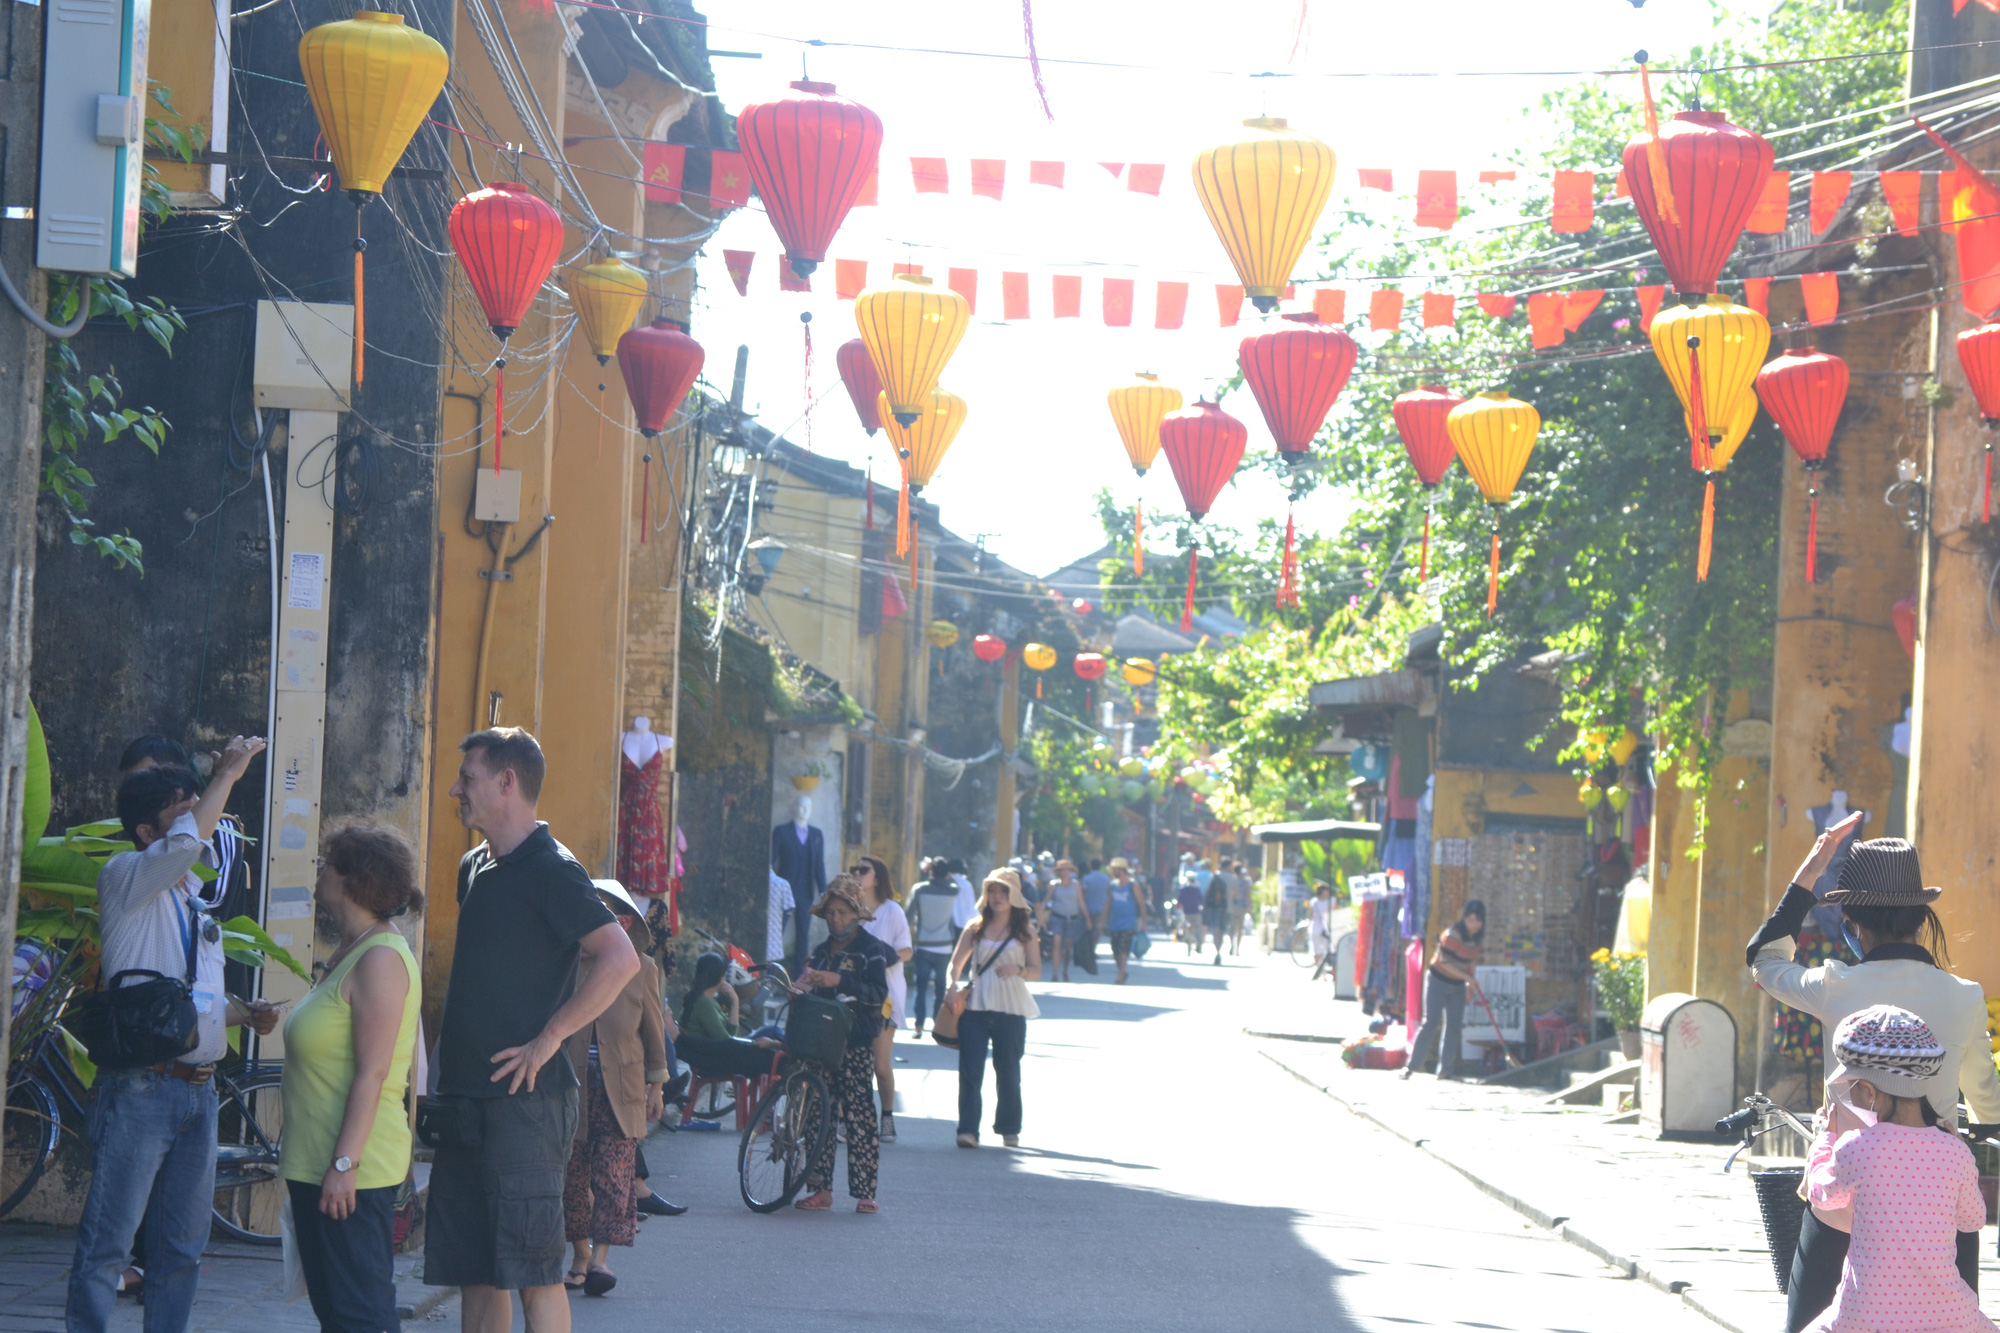 Social distancing rules reinstated in Hoi An to prevent COVID-19 spread